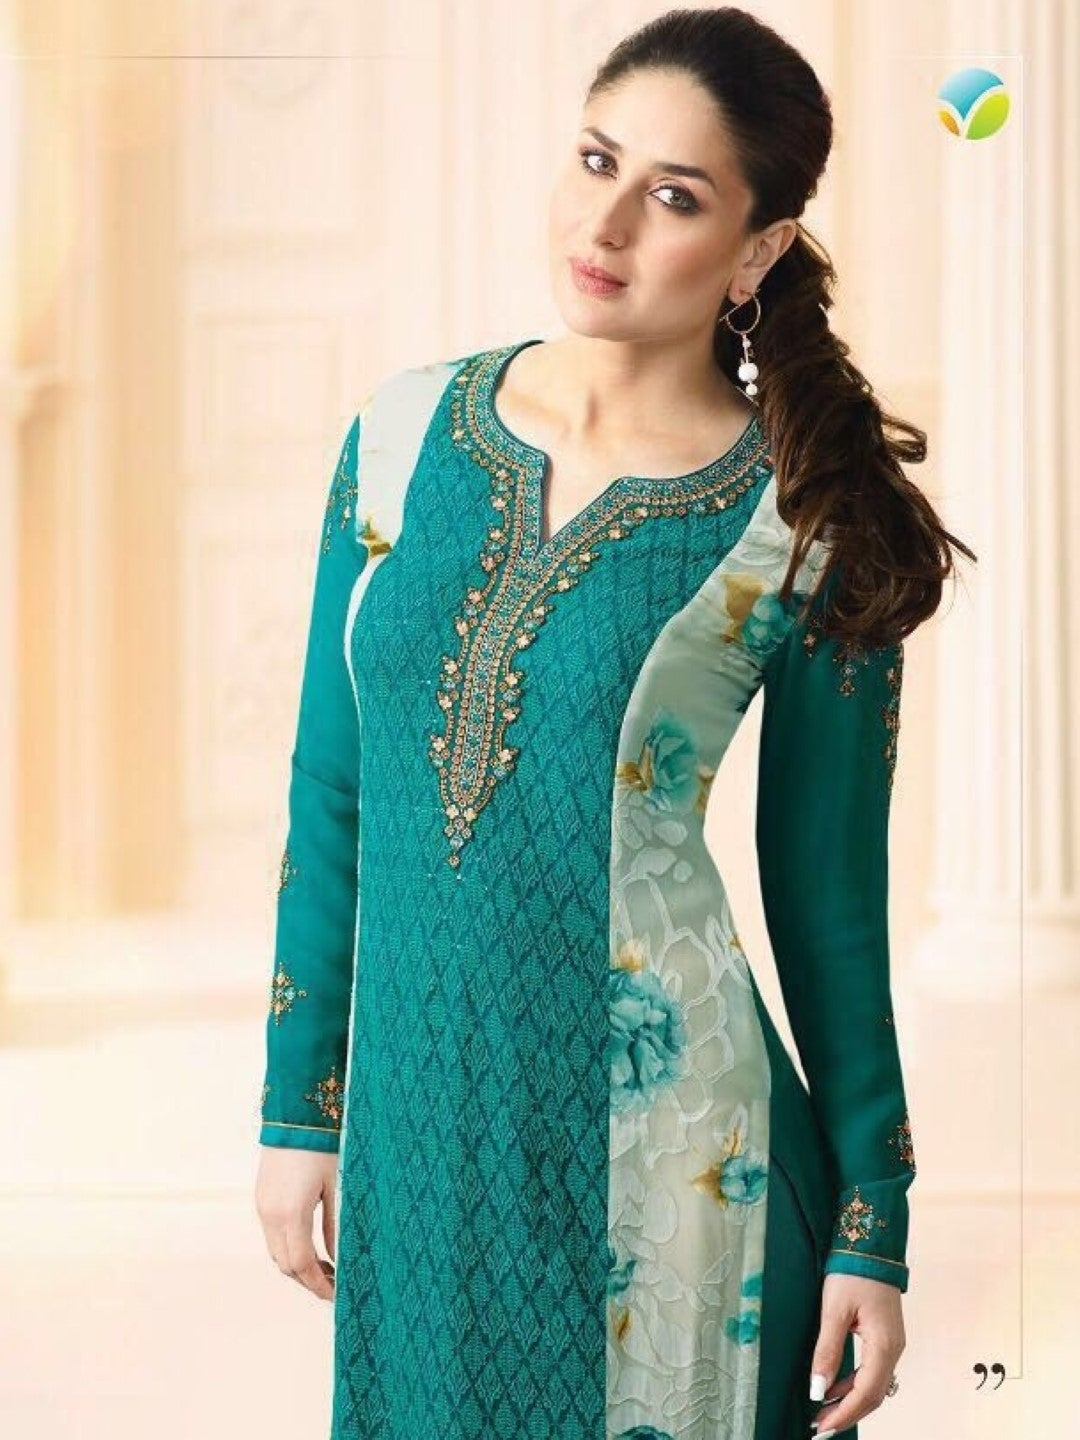 Online shopping for Pakistani Dresses & Pakistani Salwar Kameez - Buy in USA